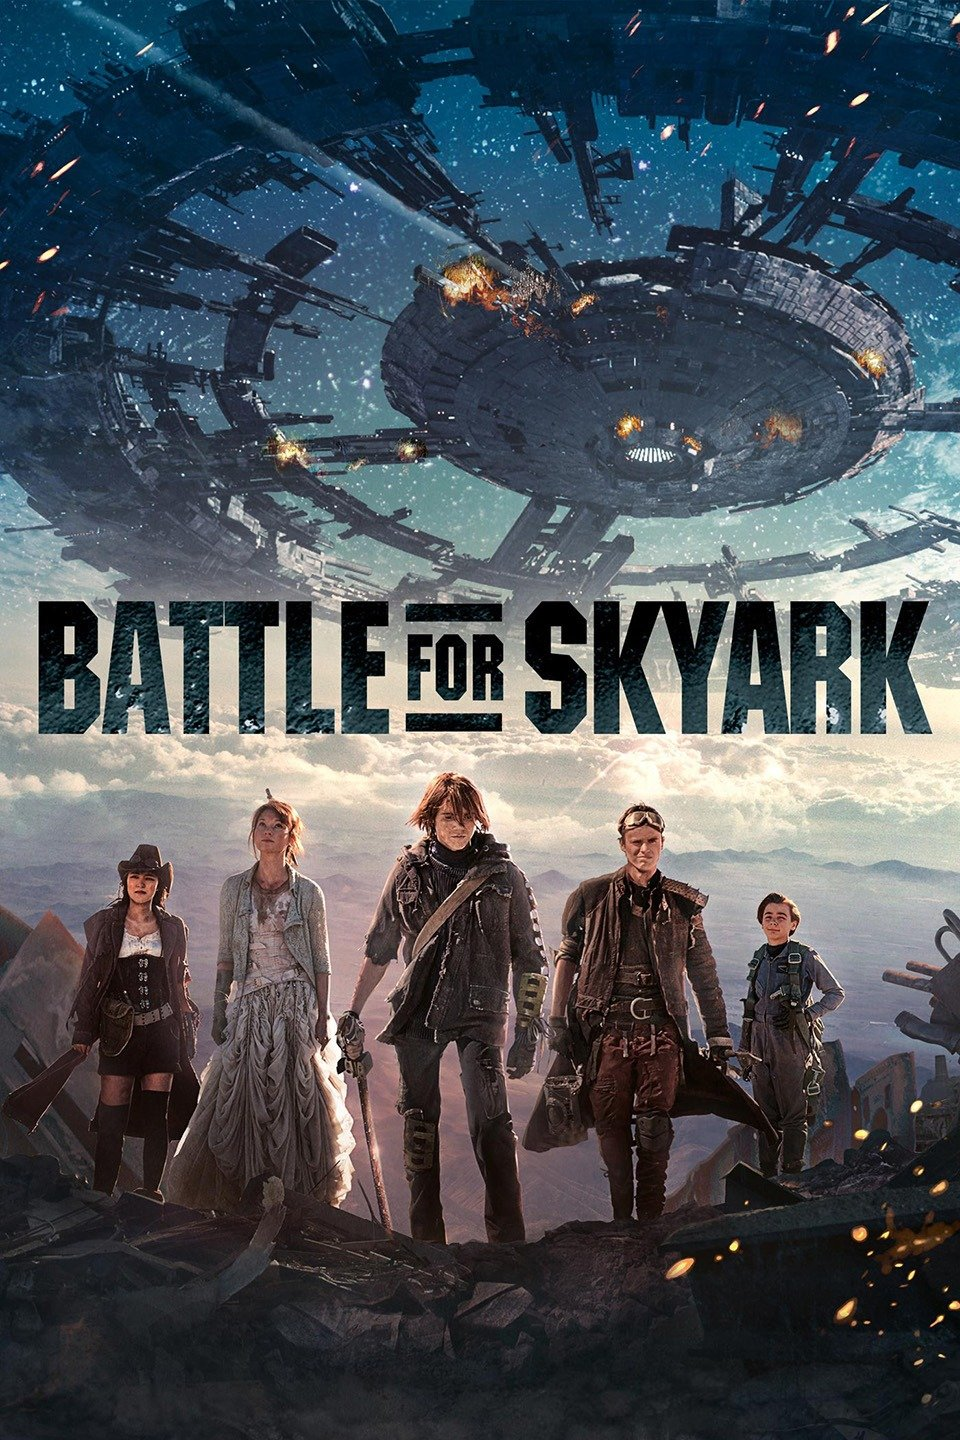 Battle for Skyark-Battle for Skyark